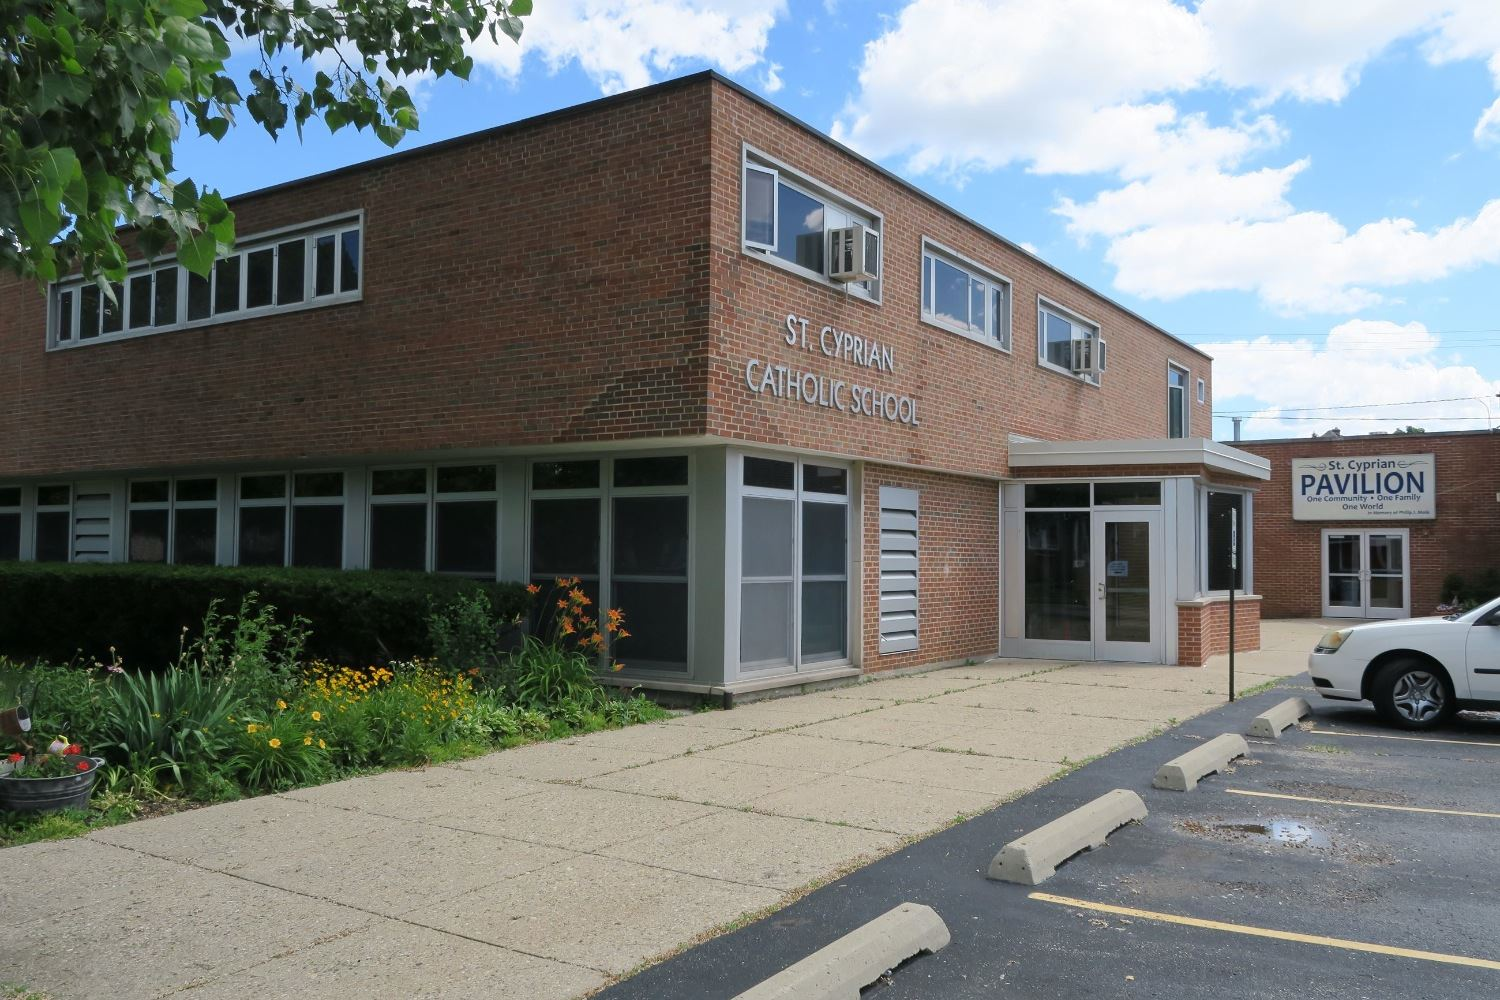 Exterior view of St. Cyprian school 's brick facade and south entrance